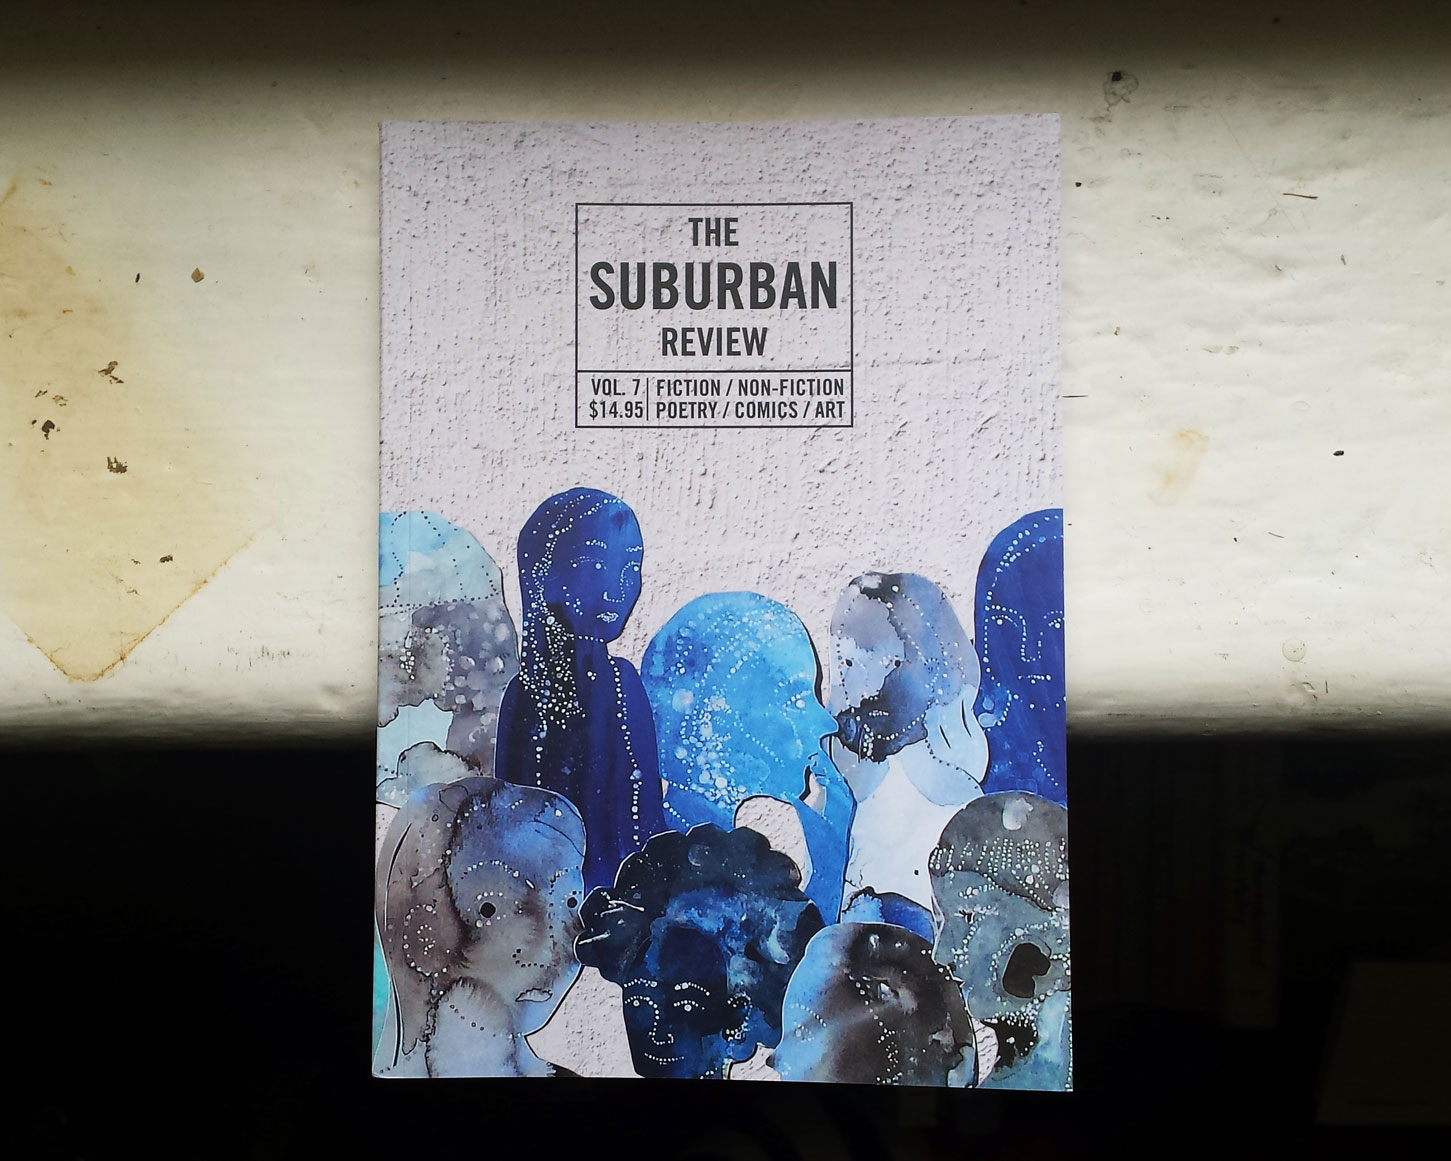 The Suburban Review